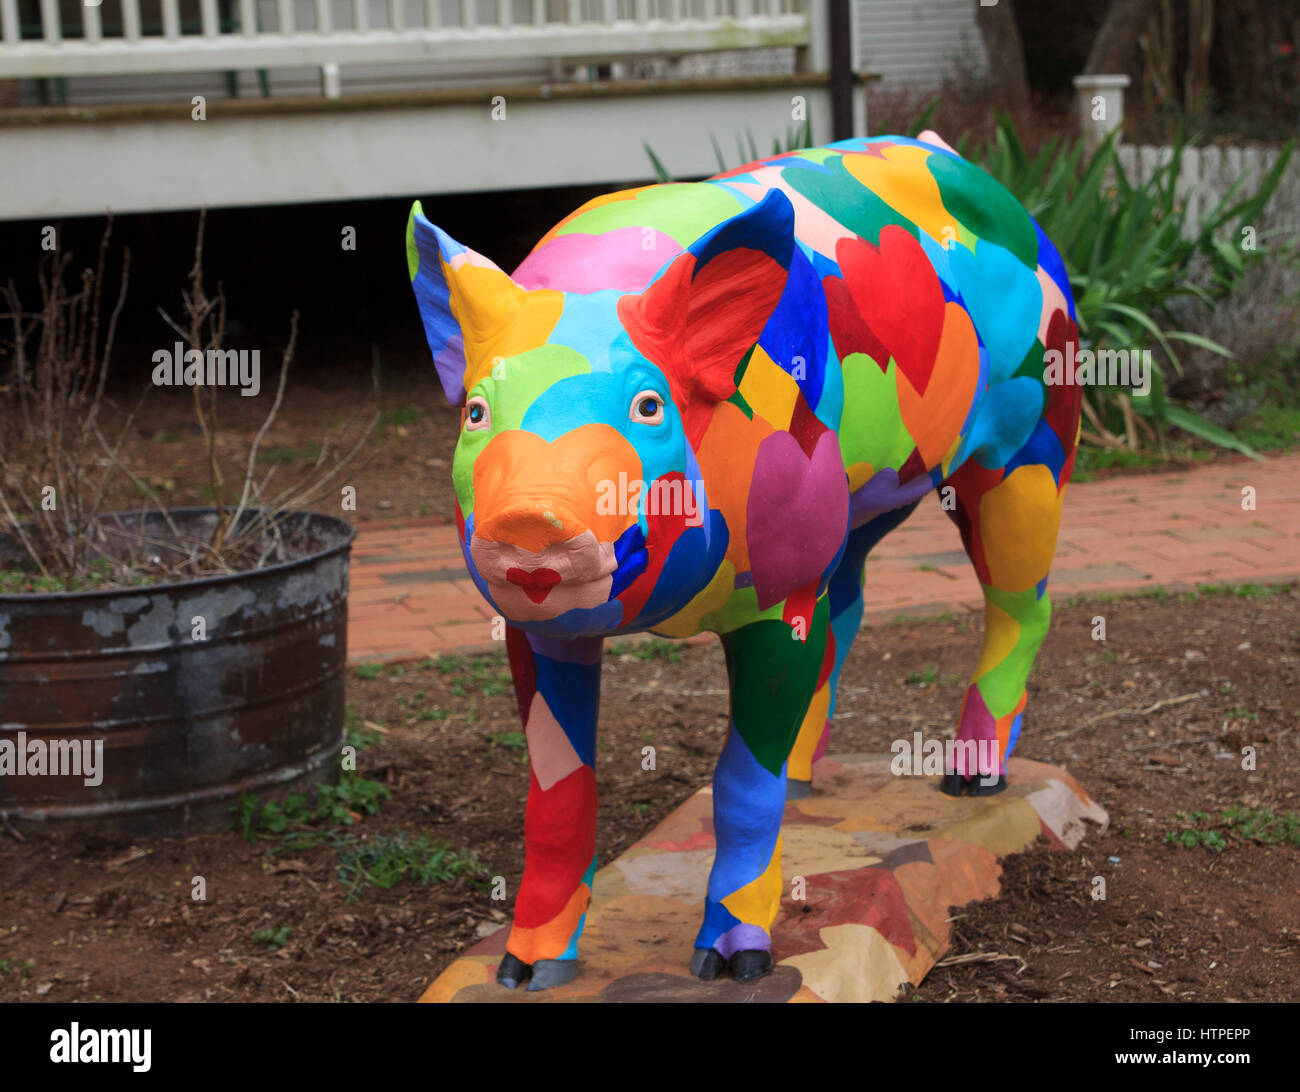 artistic Pig statue with painted hearts - Stock Image